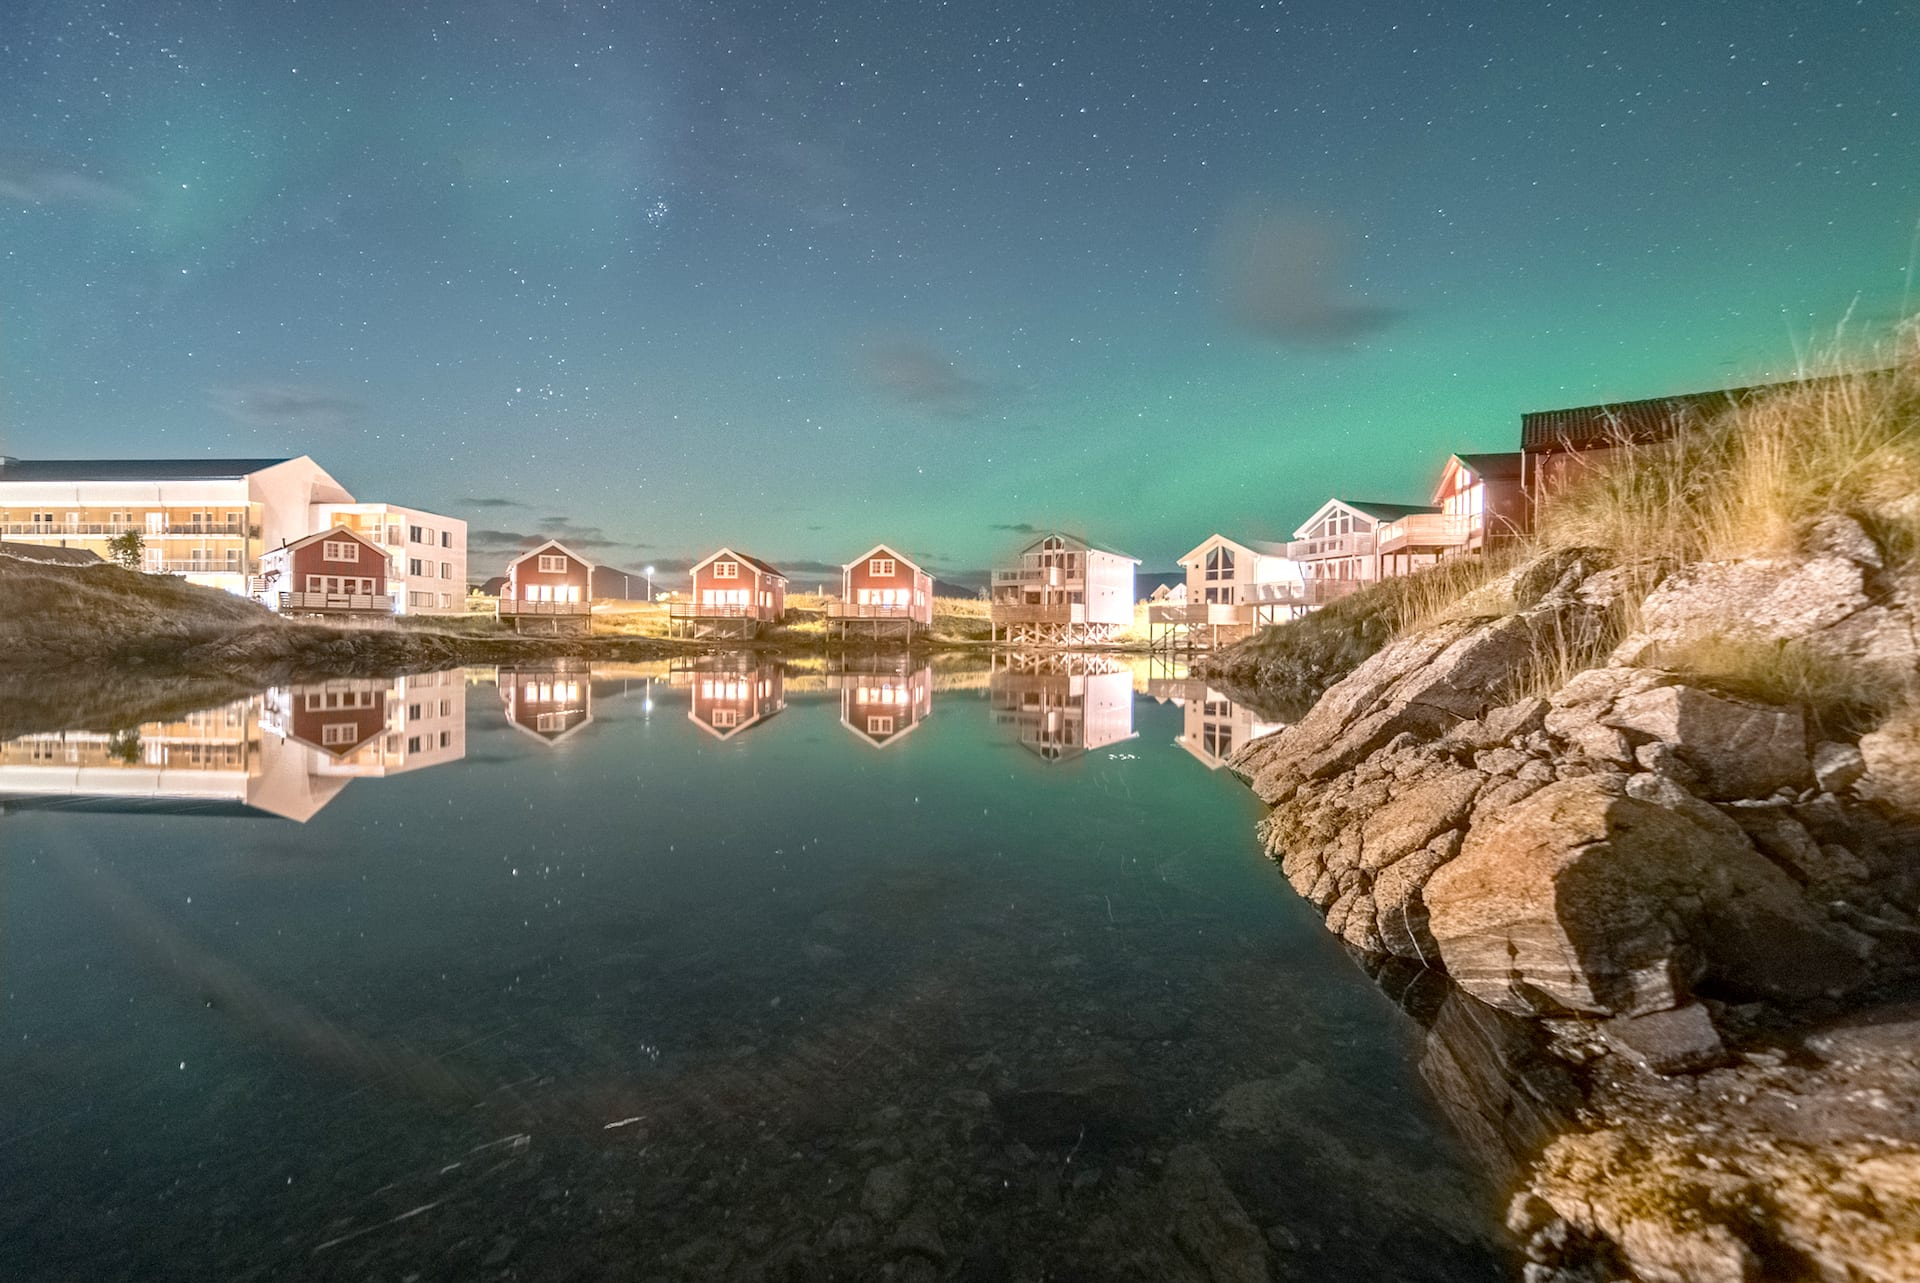 Water reflection of Northern Lights over Sommarøy Arctic Hotel building near Tromsø, Arctic Norway